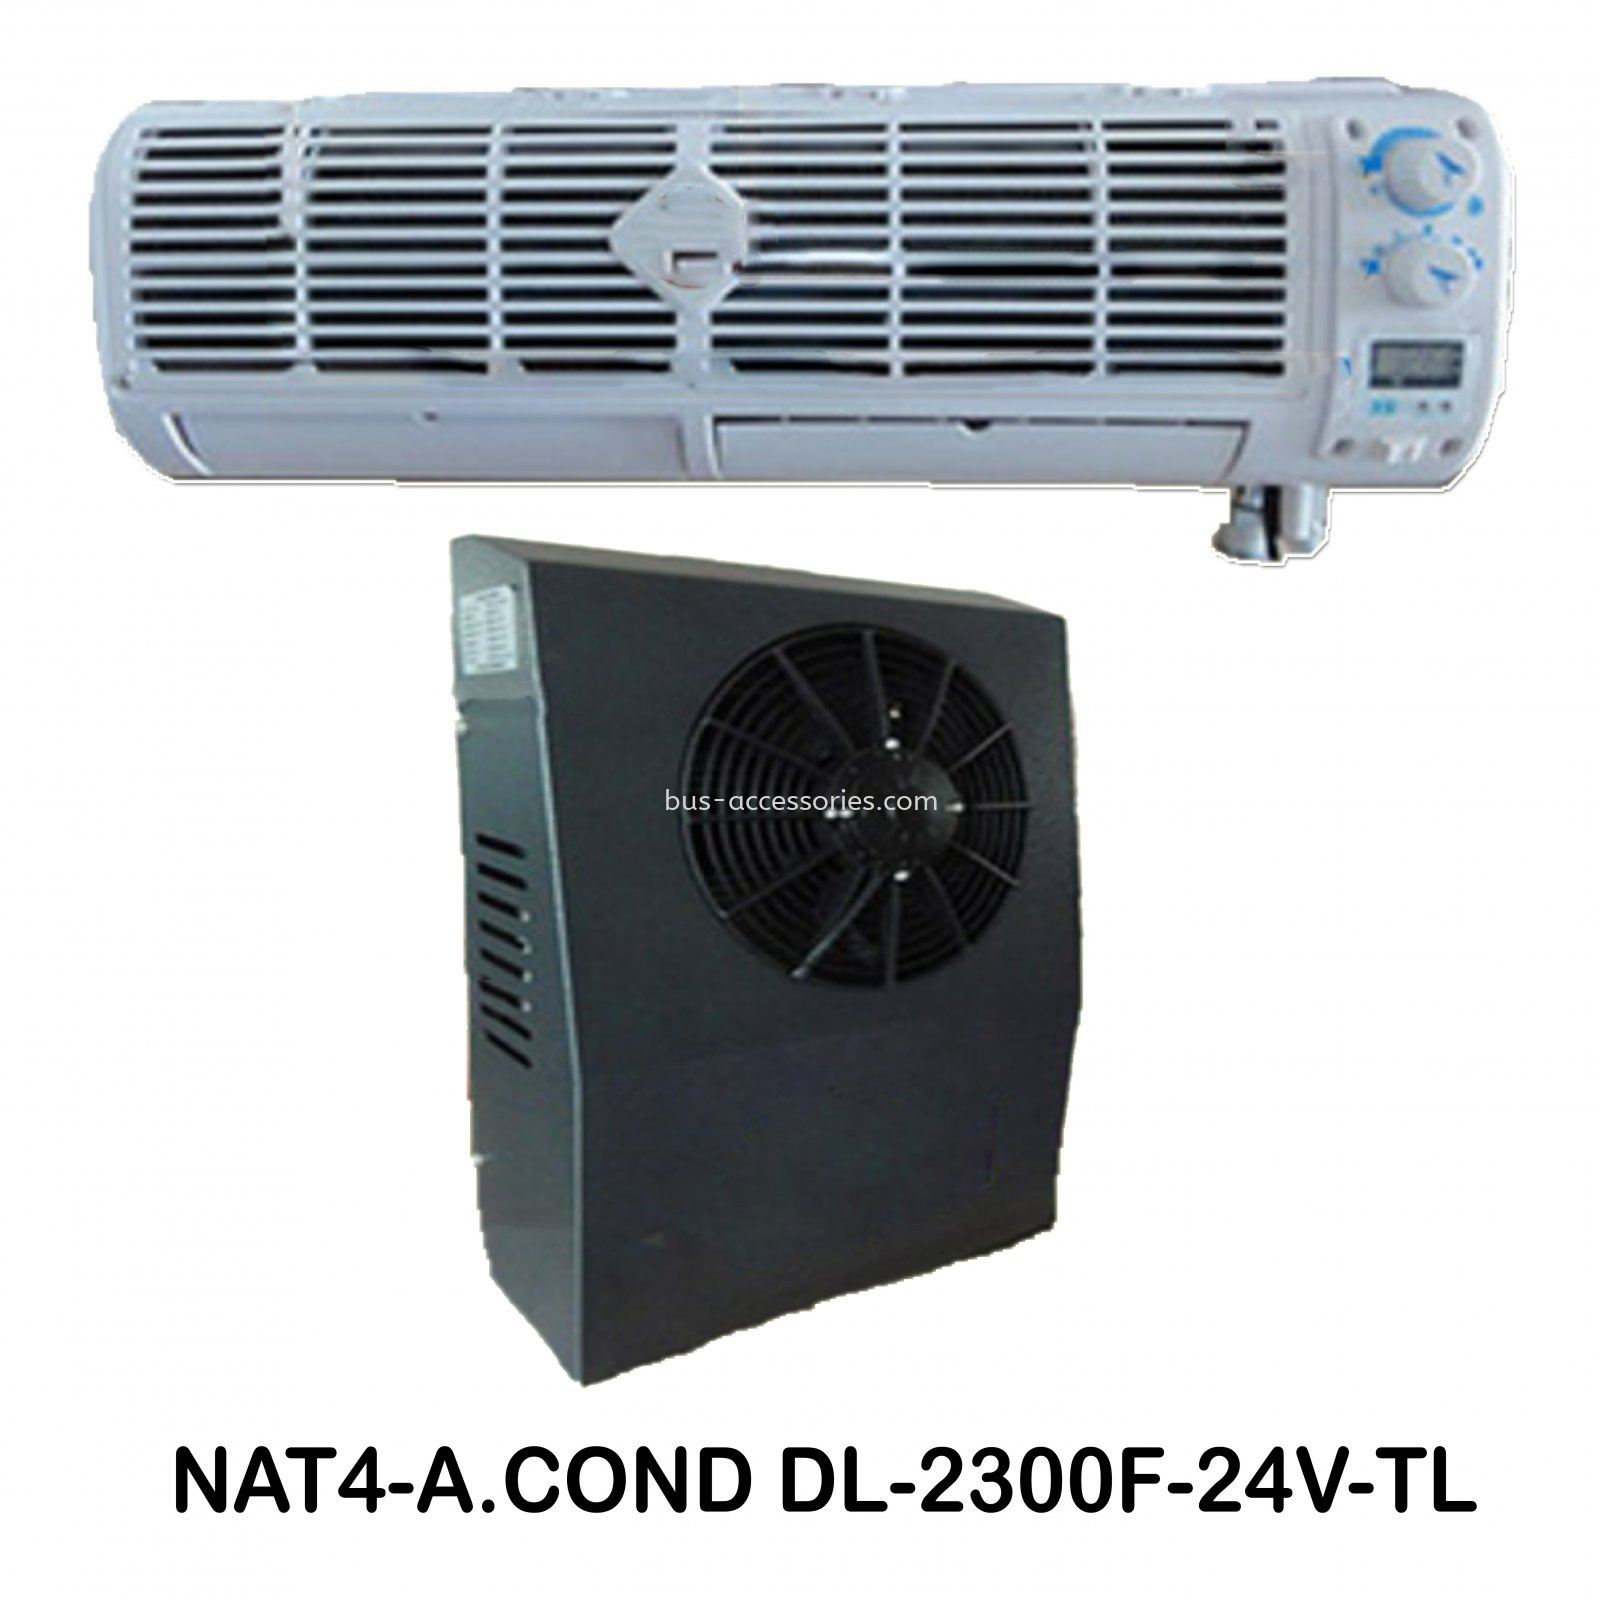 TRUCK AIR CONDITIONER (DL-2300)